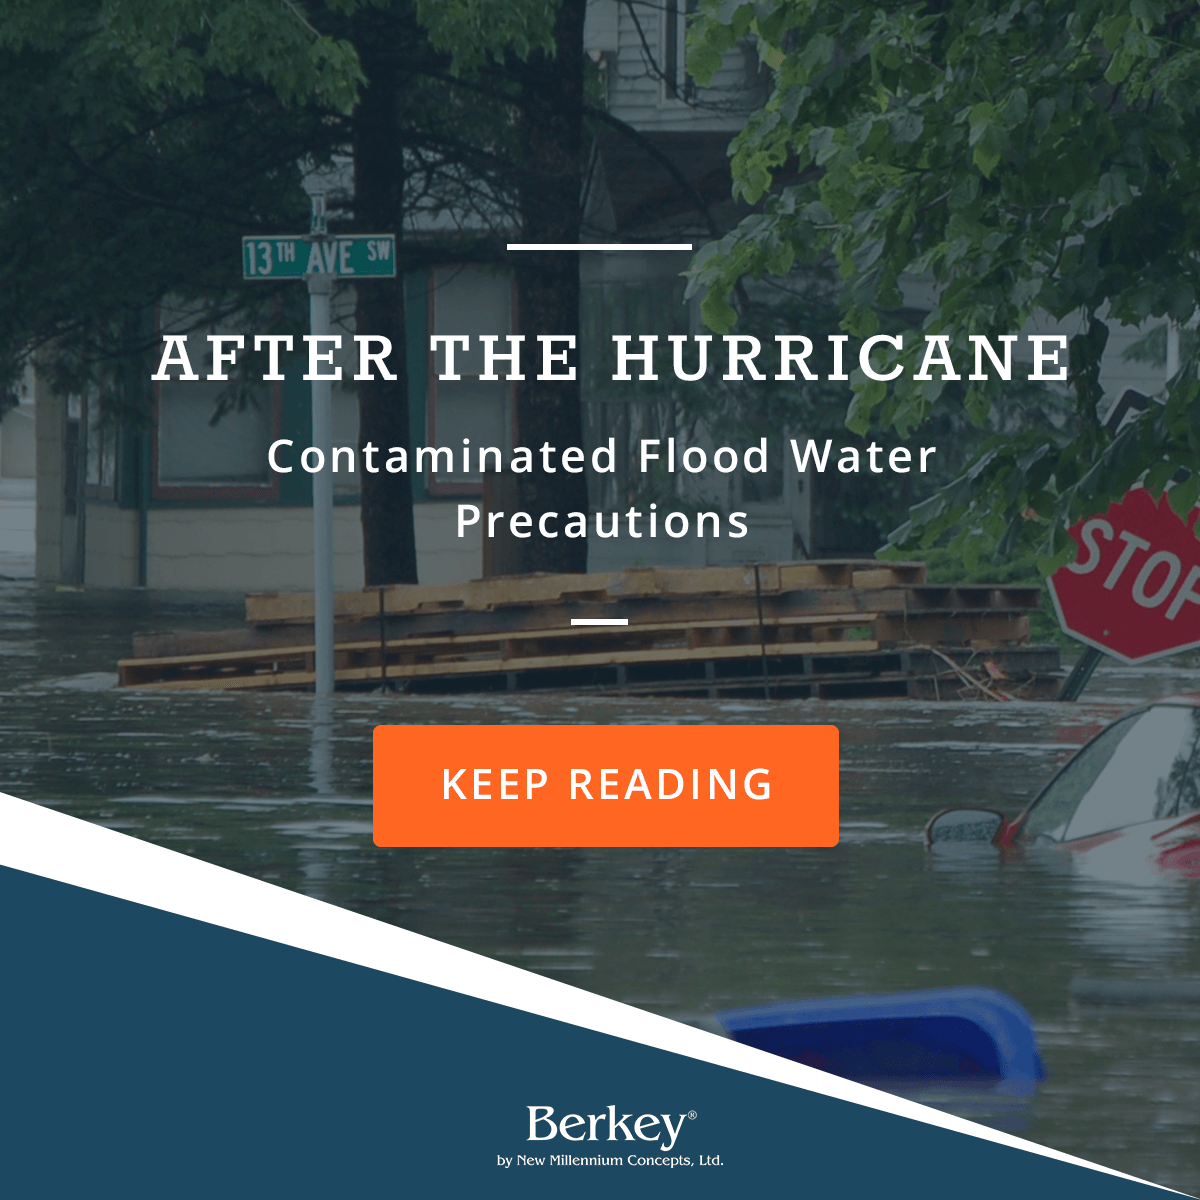 After the Hurricane: Contaminated Flood Water Precautions